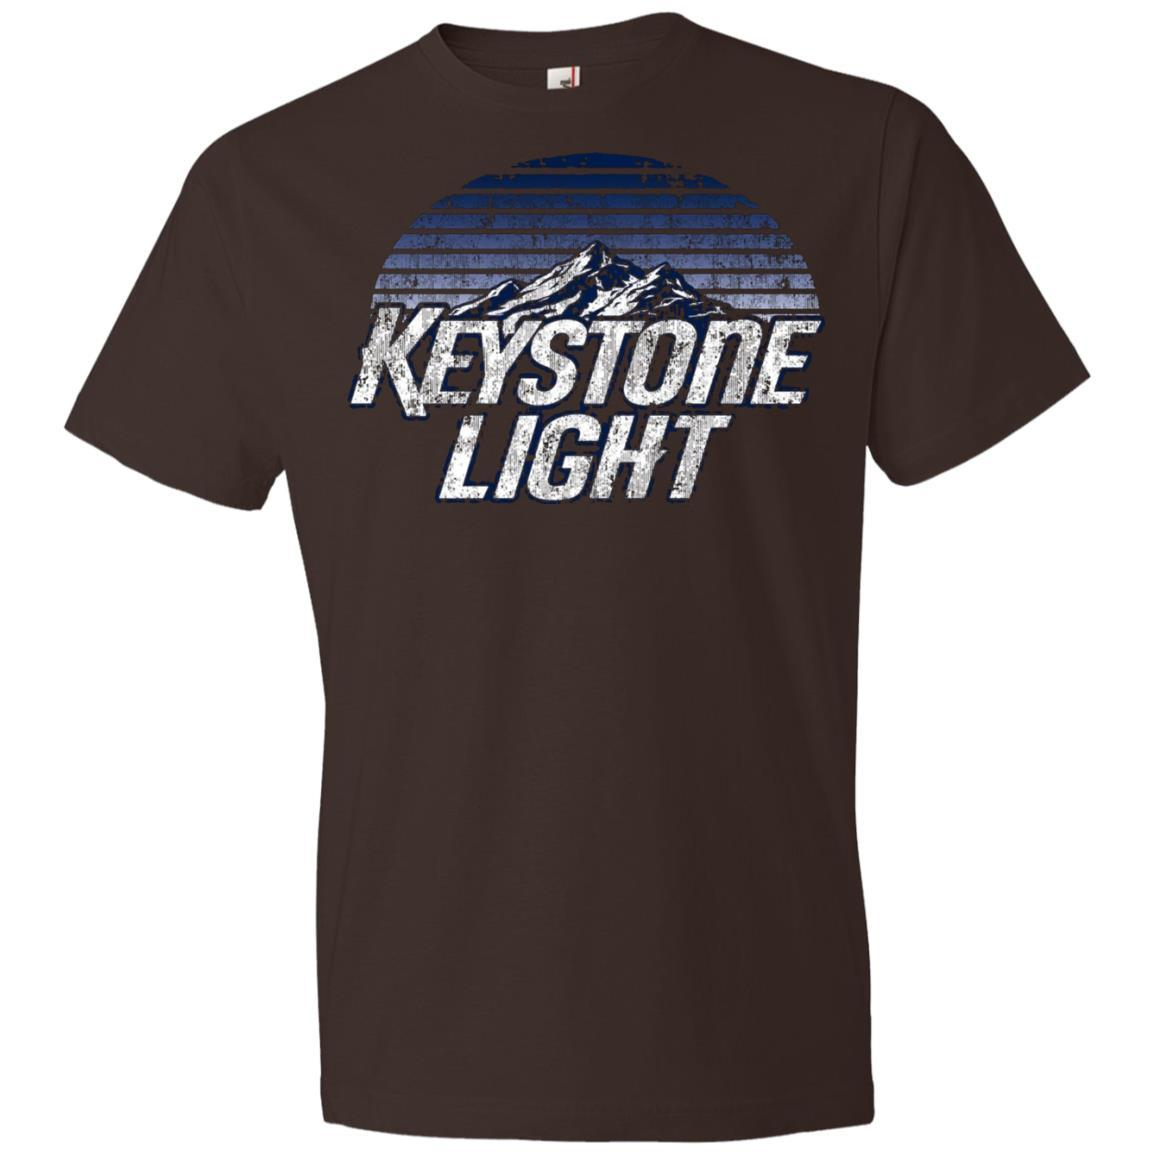 Keystone Light Beer Classic Look - Anvil Lightweight T-Shirt Chocolate / 3XL